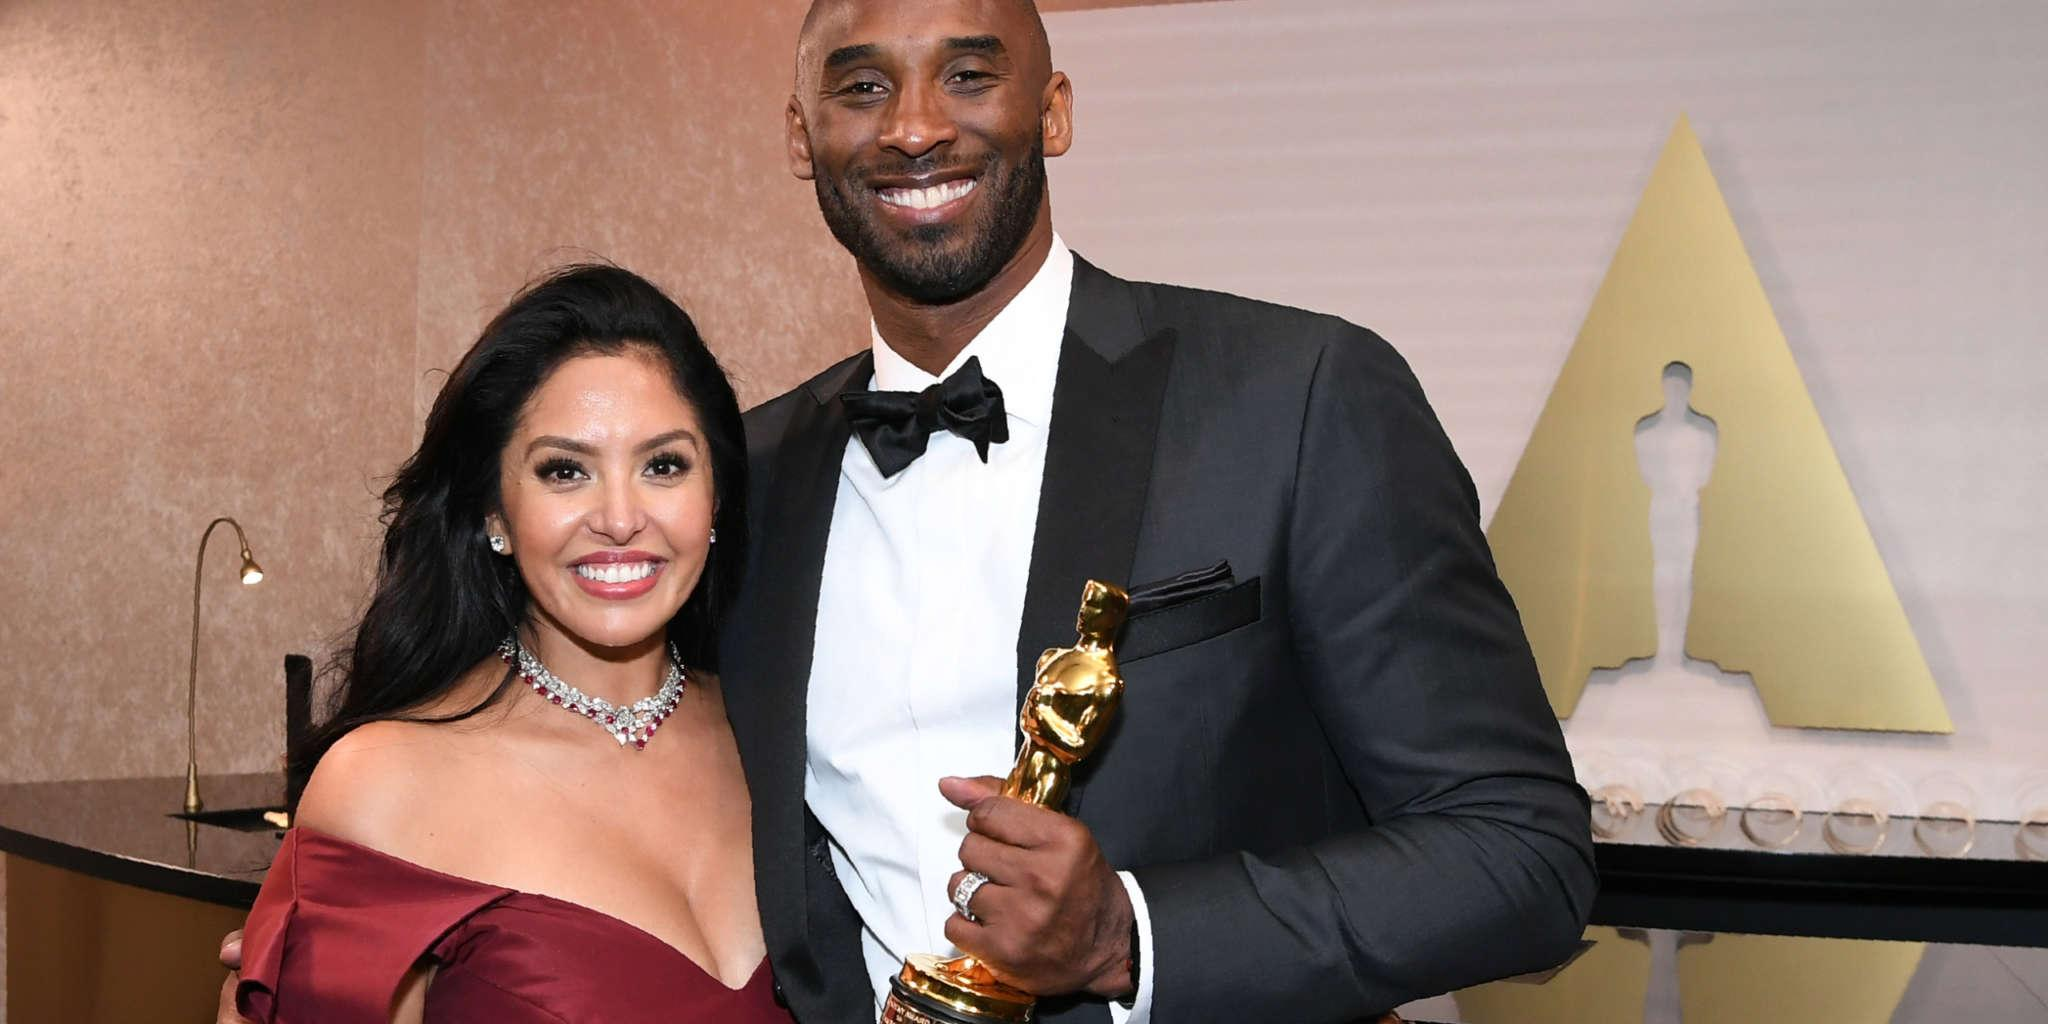 Vanessa Bryant Gives Tearful Speech As Her Late Husband Was Announced For Basketball Hall Of Fame Induction